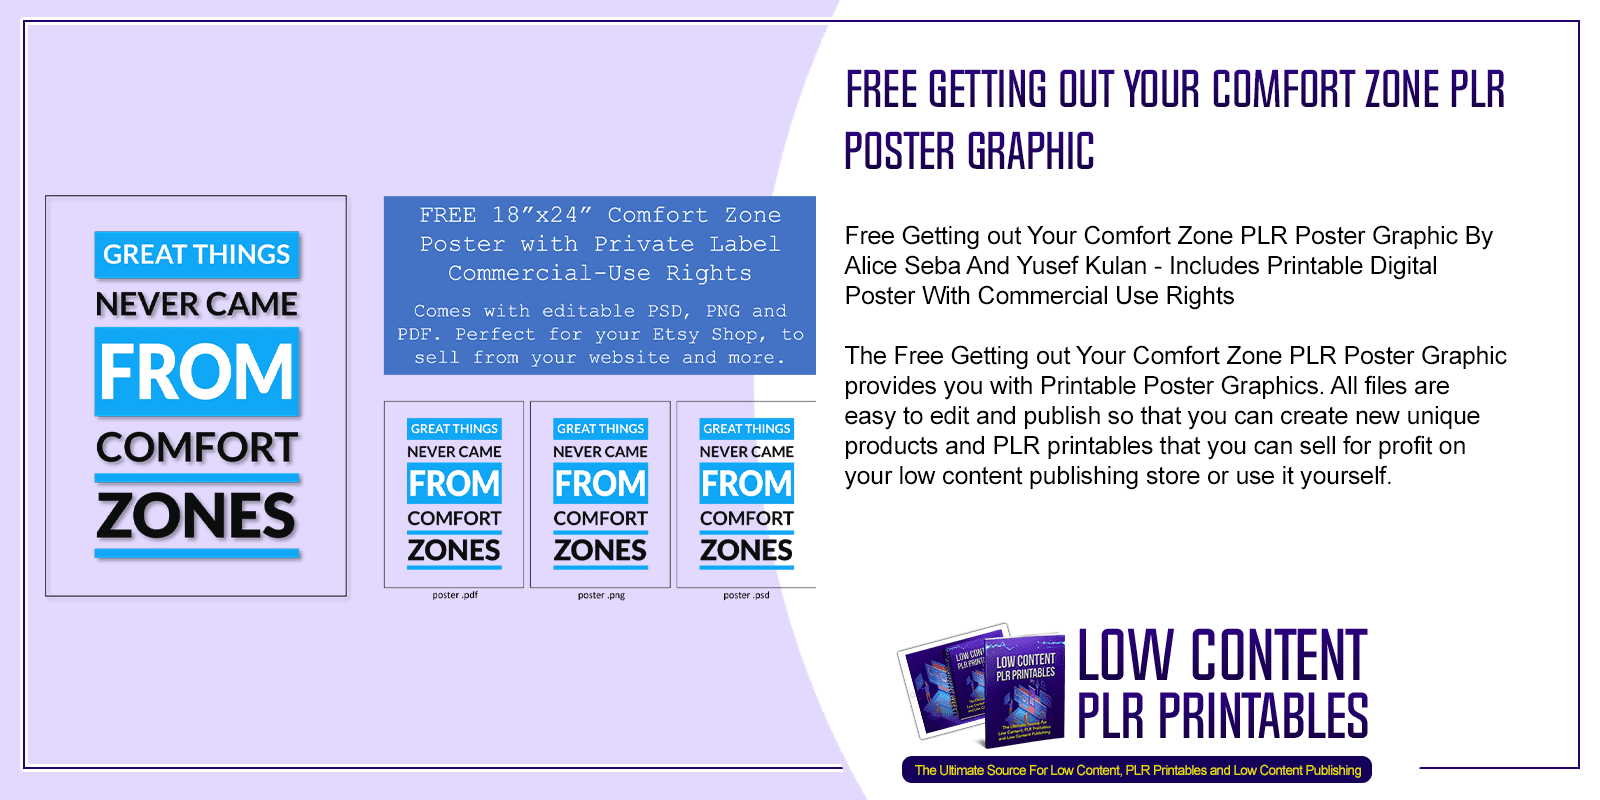 Free Getting out Your Comfort Zone PLR Poster Graphic